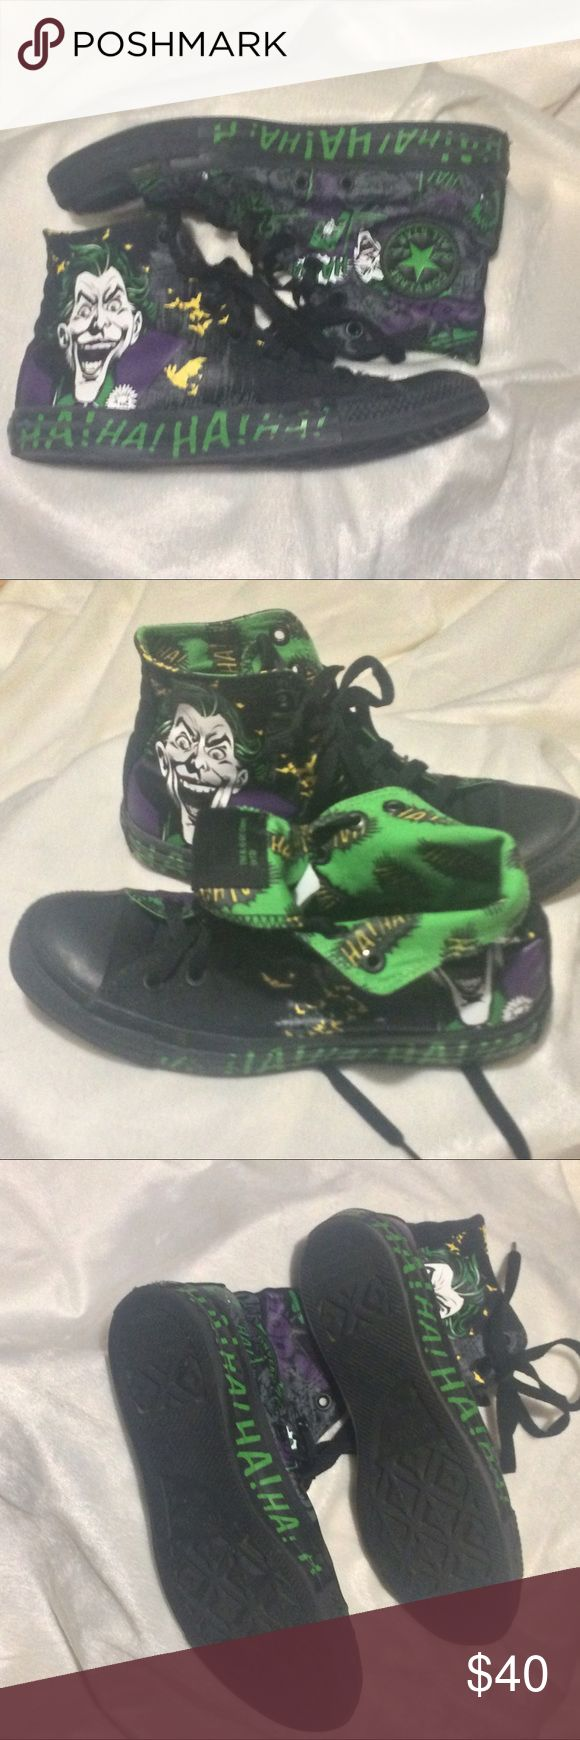 Joker and Batman Converse All Stars Really awesome and cool shoes! With large Joker and small Batman all over. Men's 6 woman's 8. Paint on the upper is in great condition. With some paint peeling around the soul edges. Tread on soles is still in great condition. Converse Shoes Sneakers